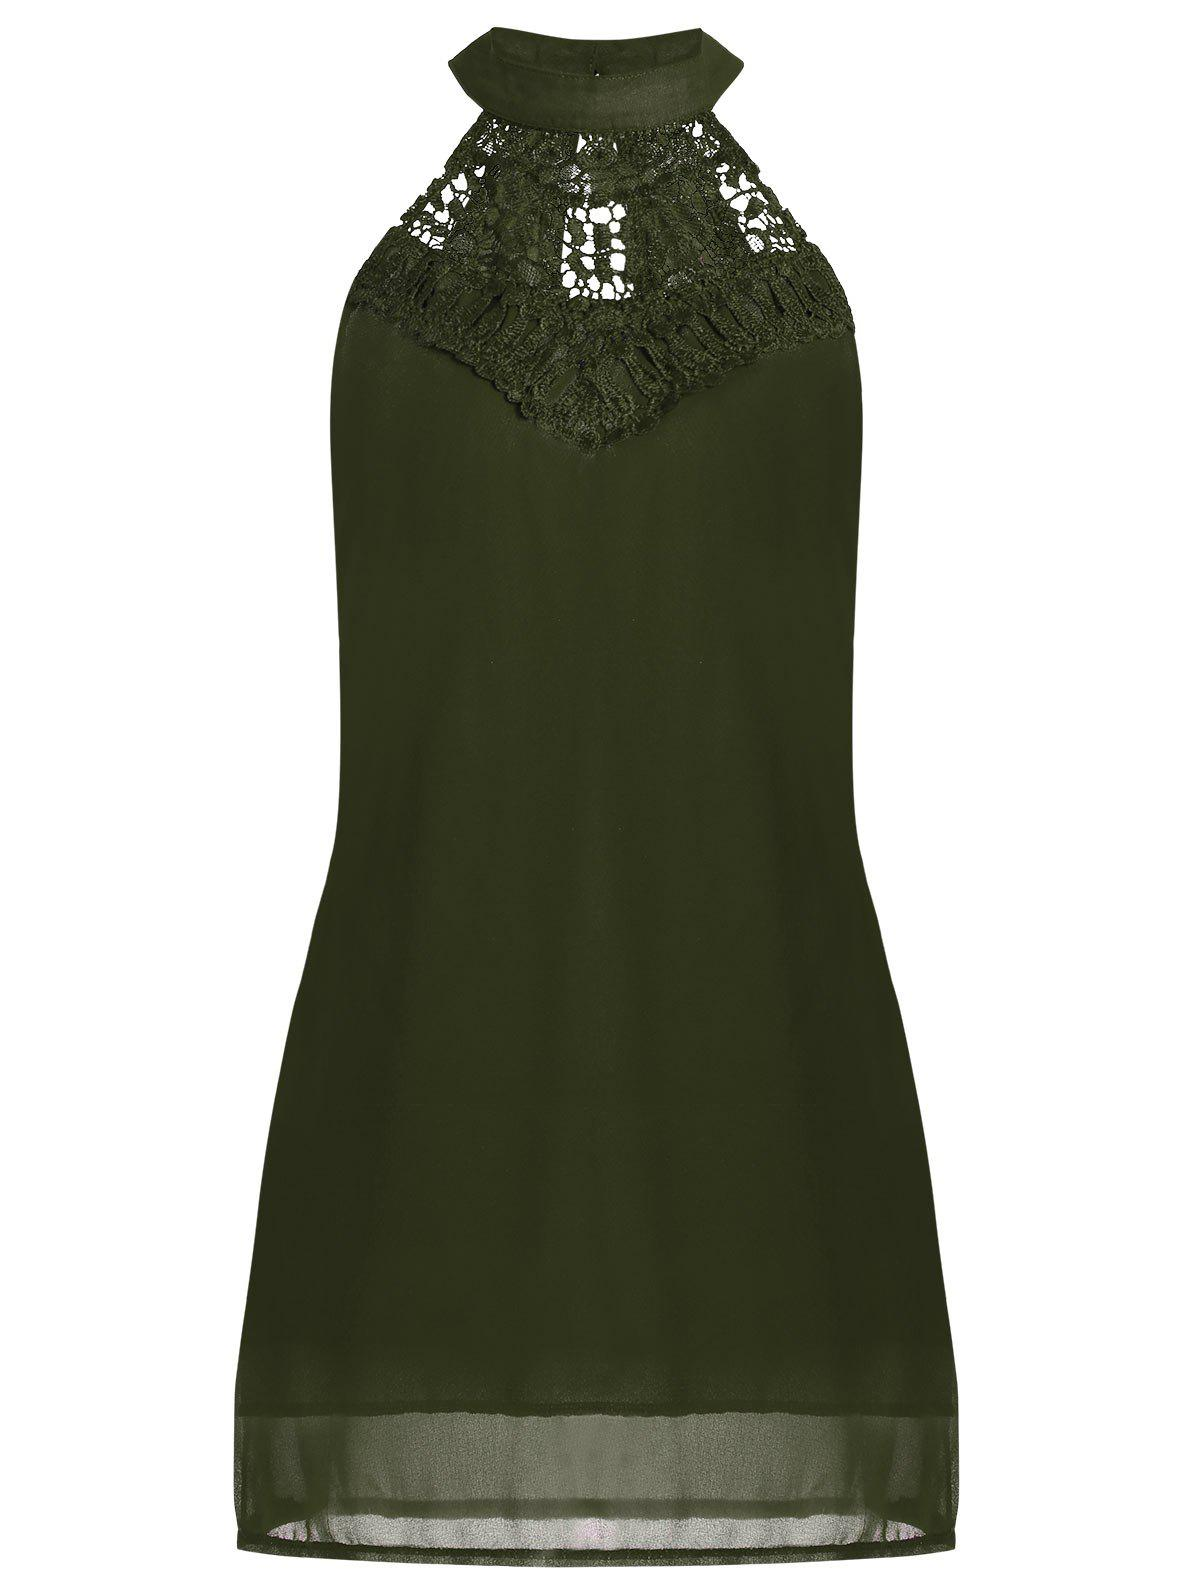 Crochet Lace Panel Cut Out Dress - ARMY GREEN L